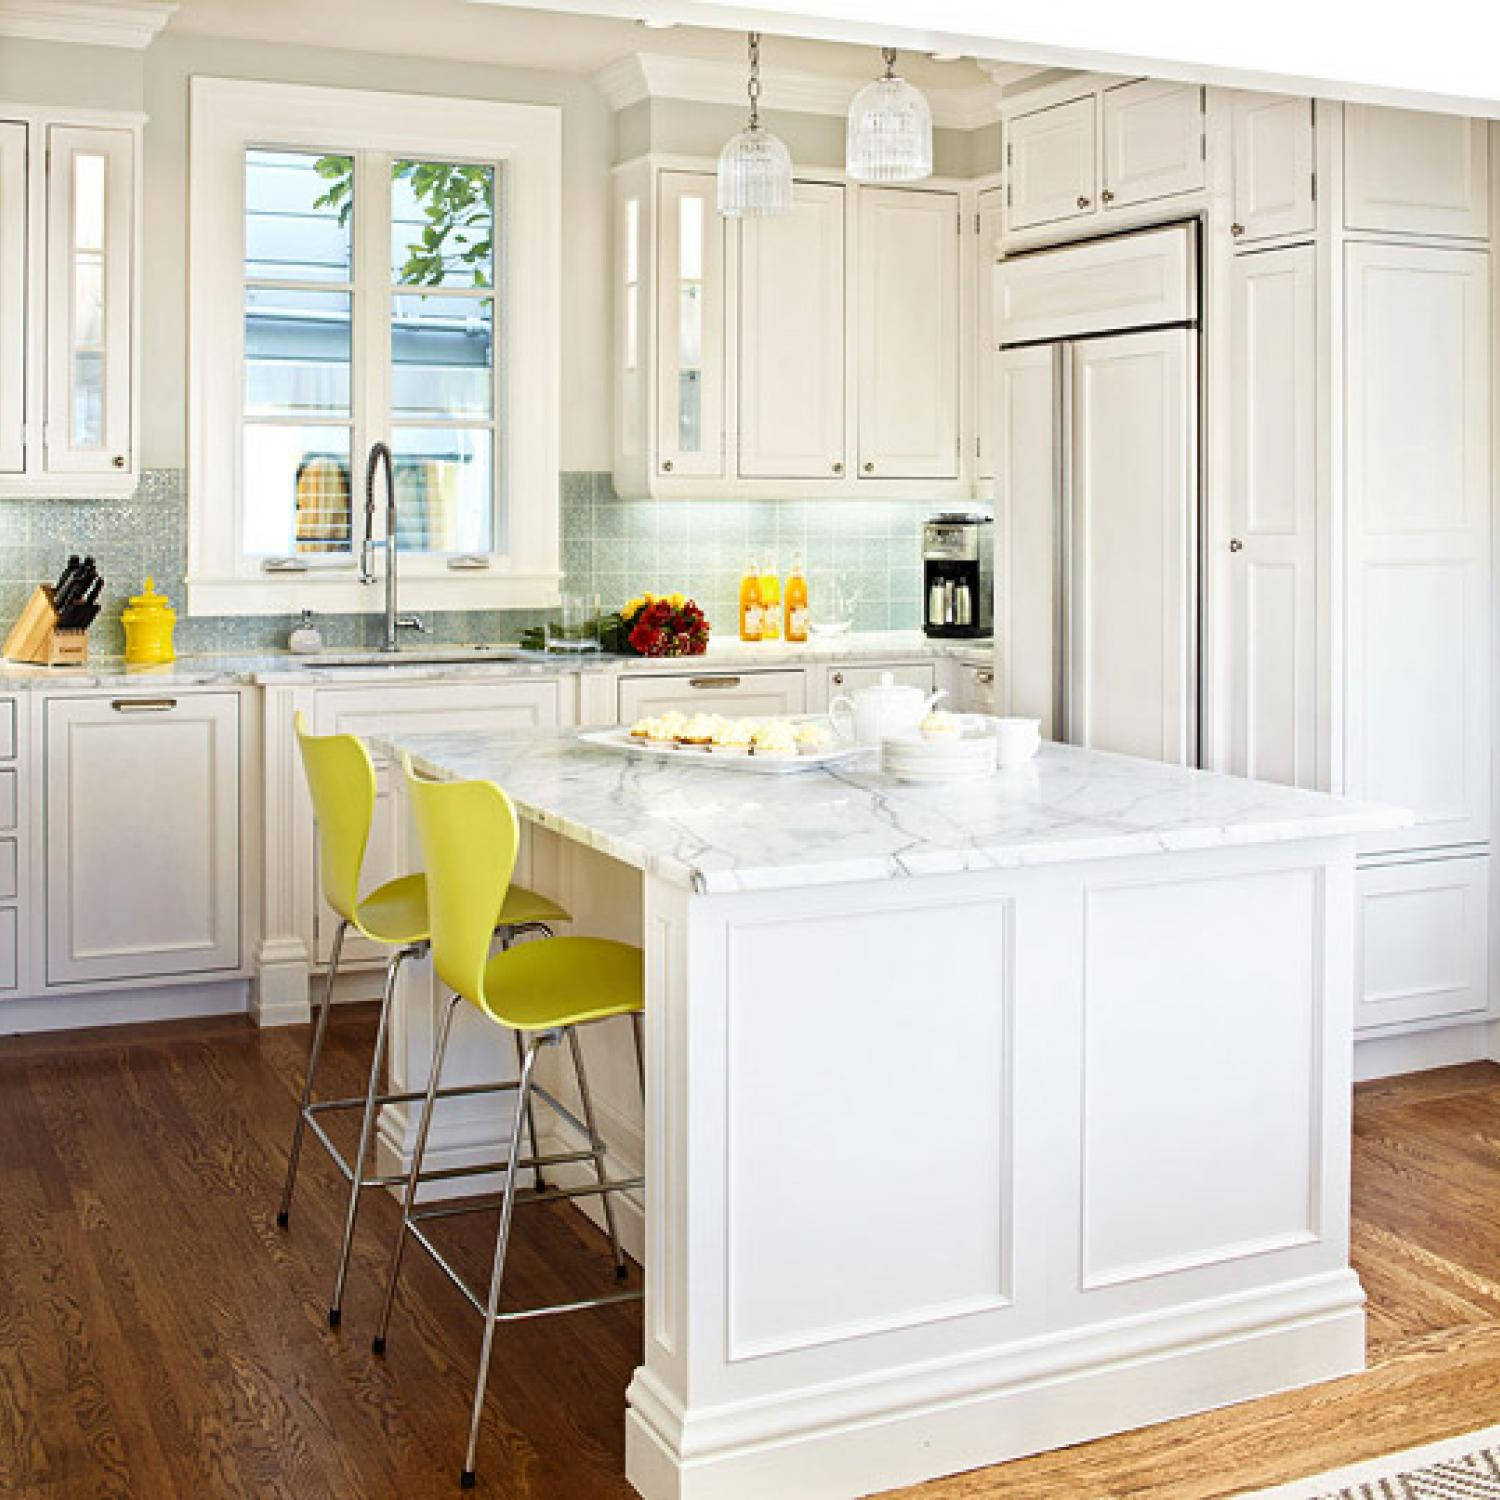 10x10 White Kitchen Cabinets Design Ideas For White Kitchens Traditional Home